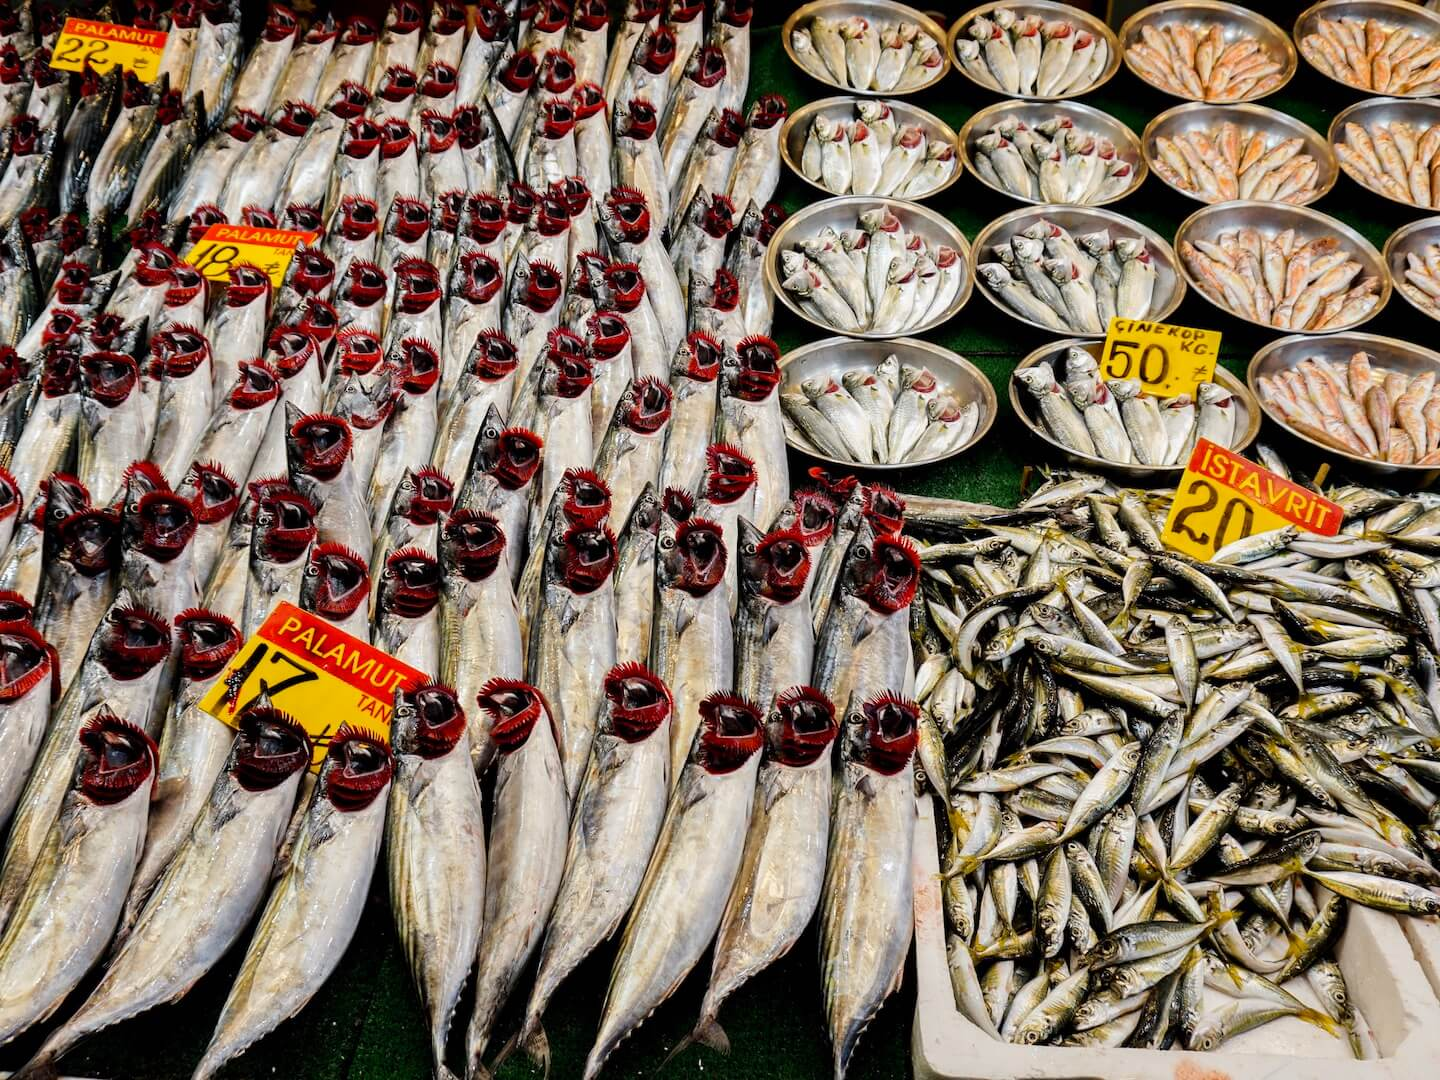 Üsküdar Fish Market - Best things to do in Üsküdar